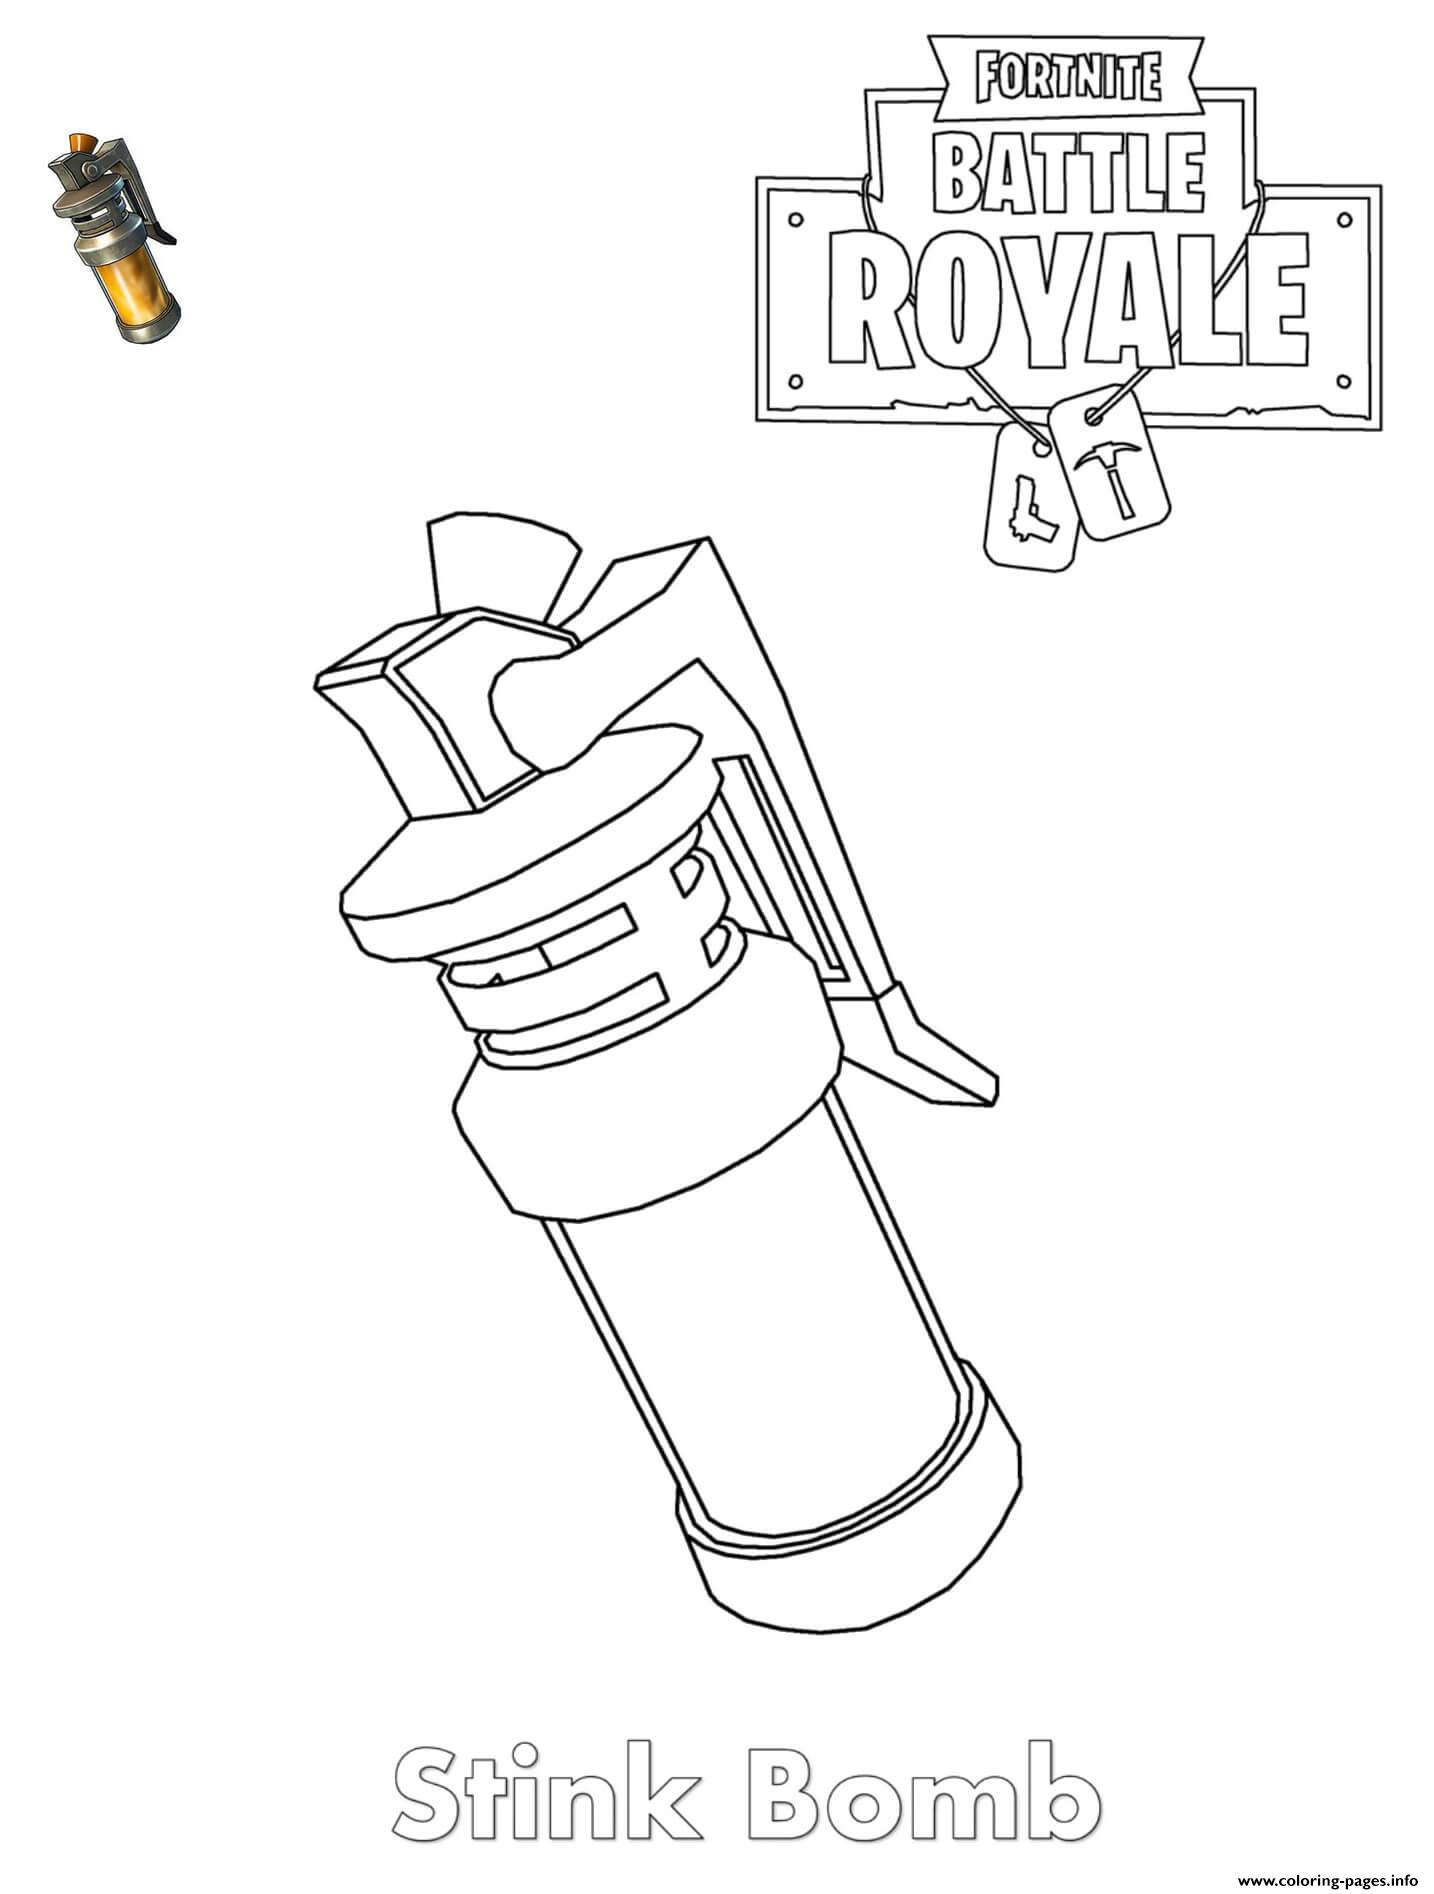 Stink Bomb Fortnite Item Coloring Pages Printable concernant Coloriage De Fortnite